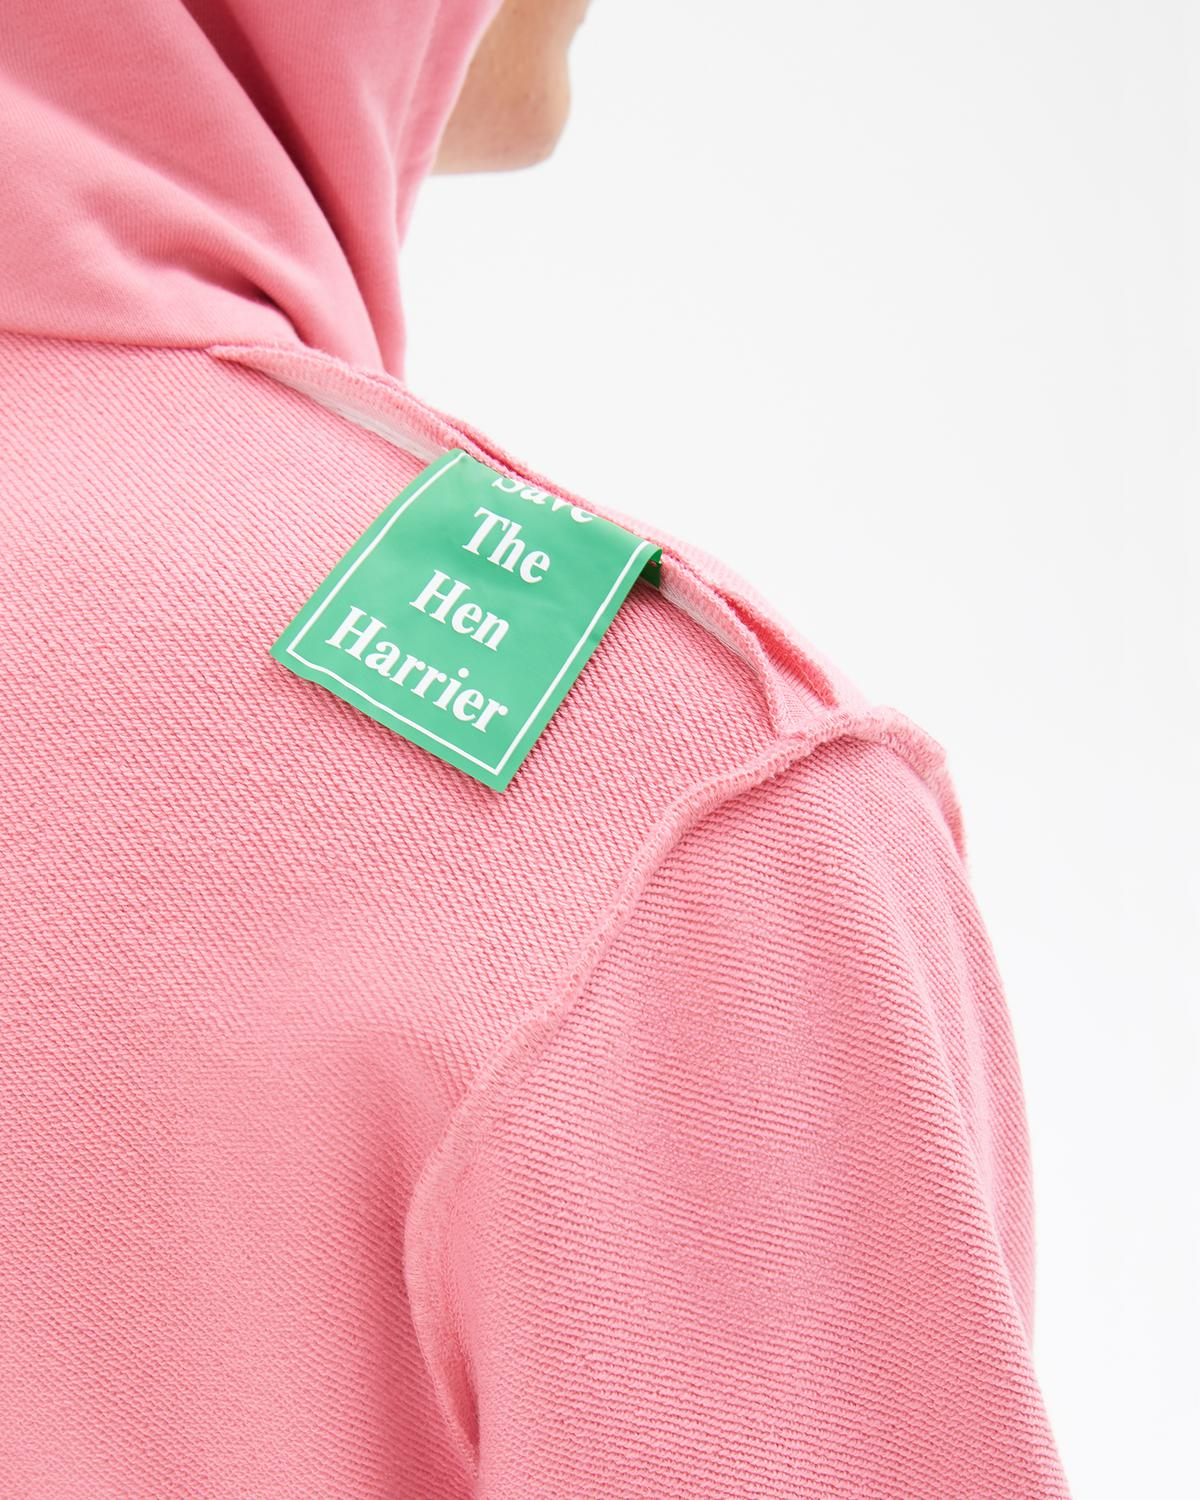 MEN'S JEREMY DELLER ZIP POCKET HOODIE